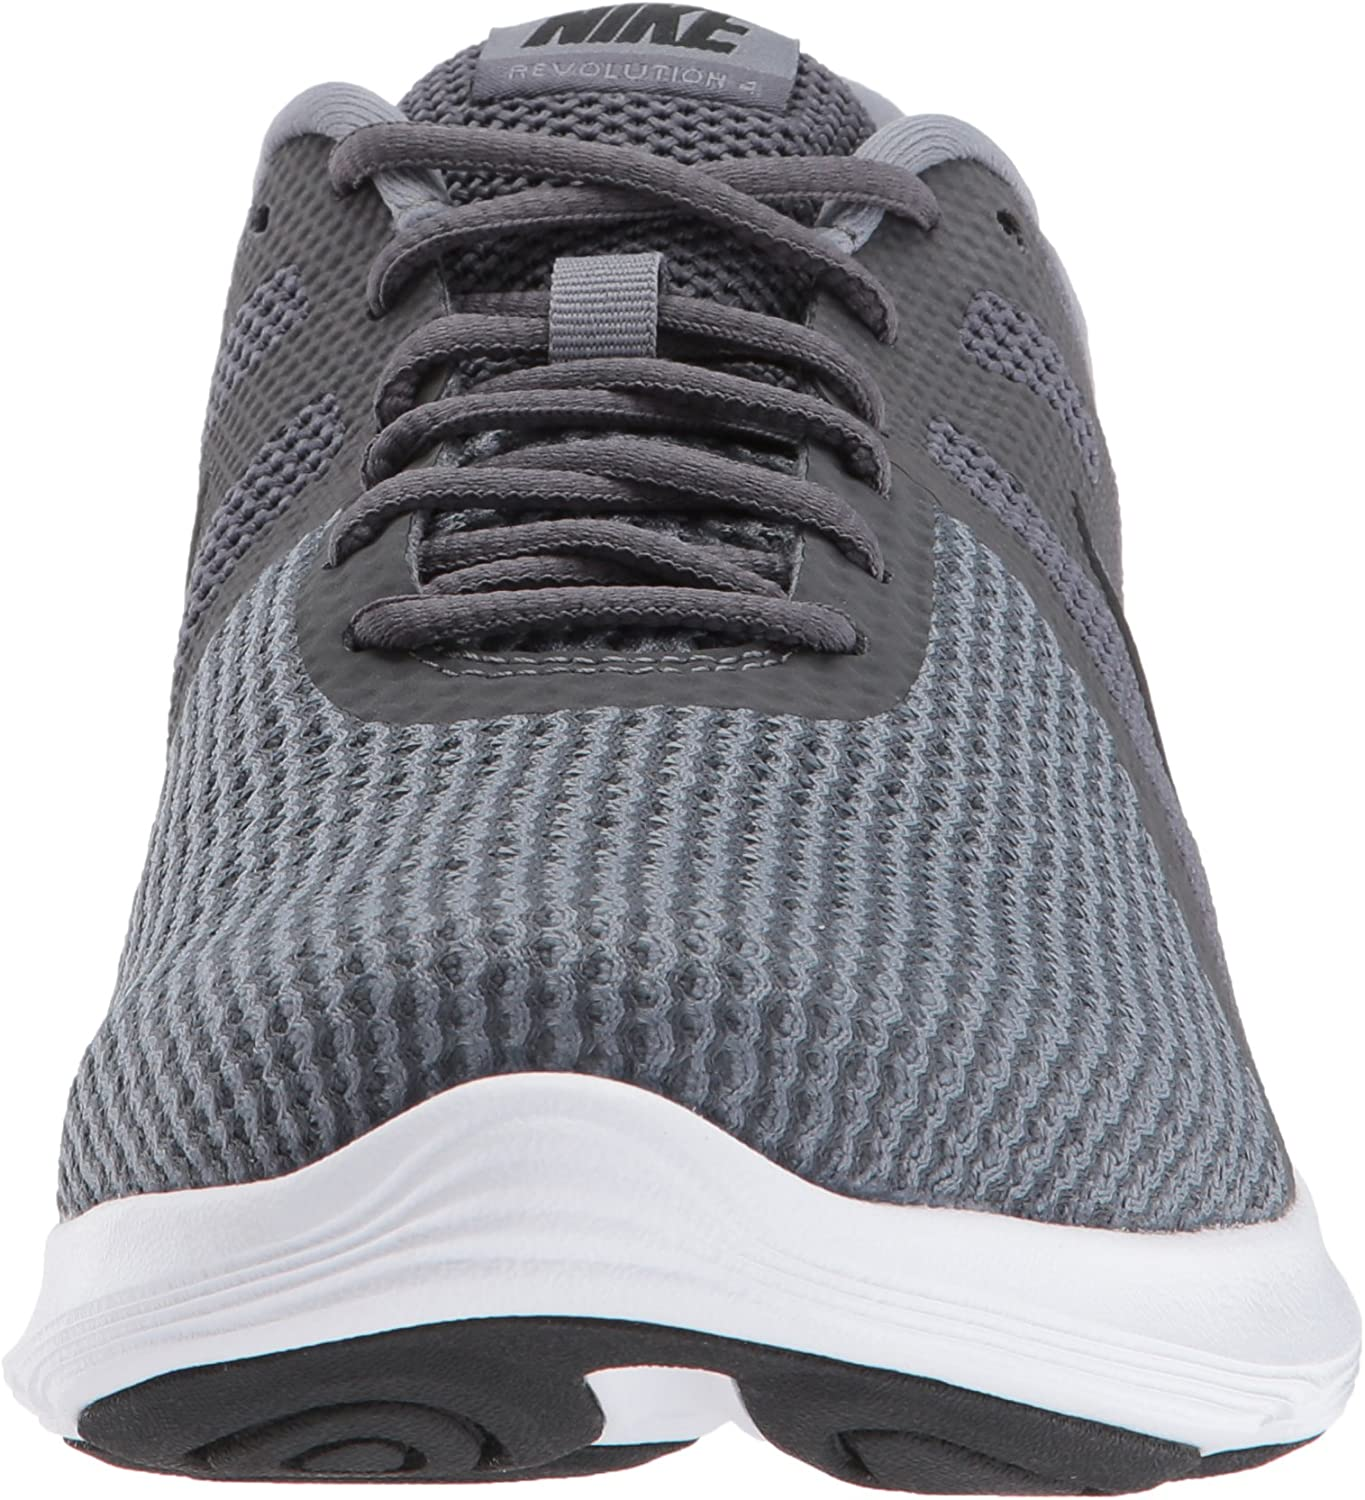 Nike Men s Revolution 4 Running Shoe, Dark Grey Black-Cool Grey White, 13 Regular US